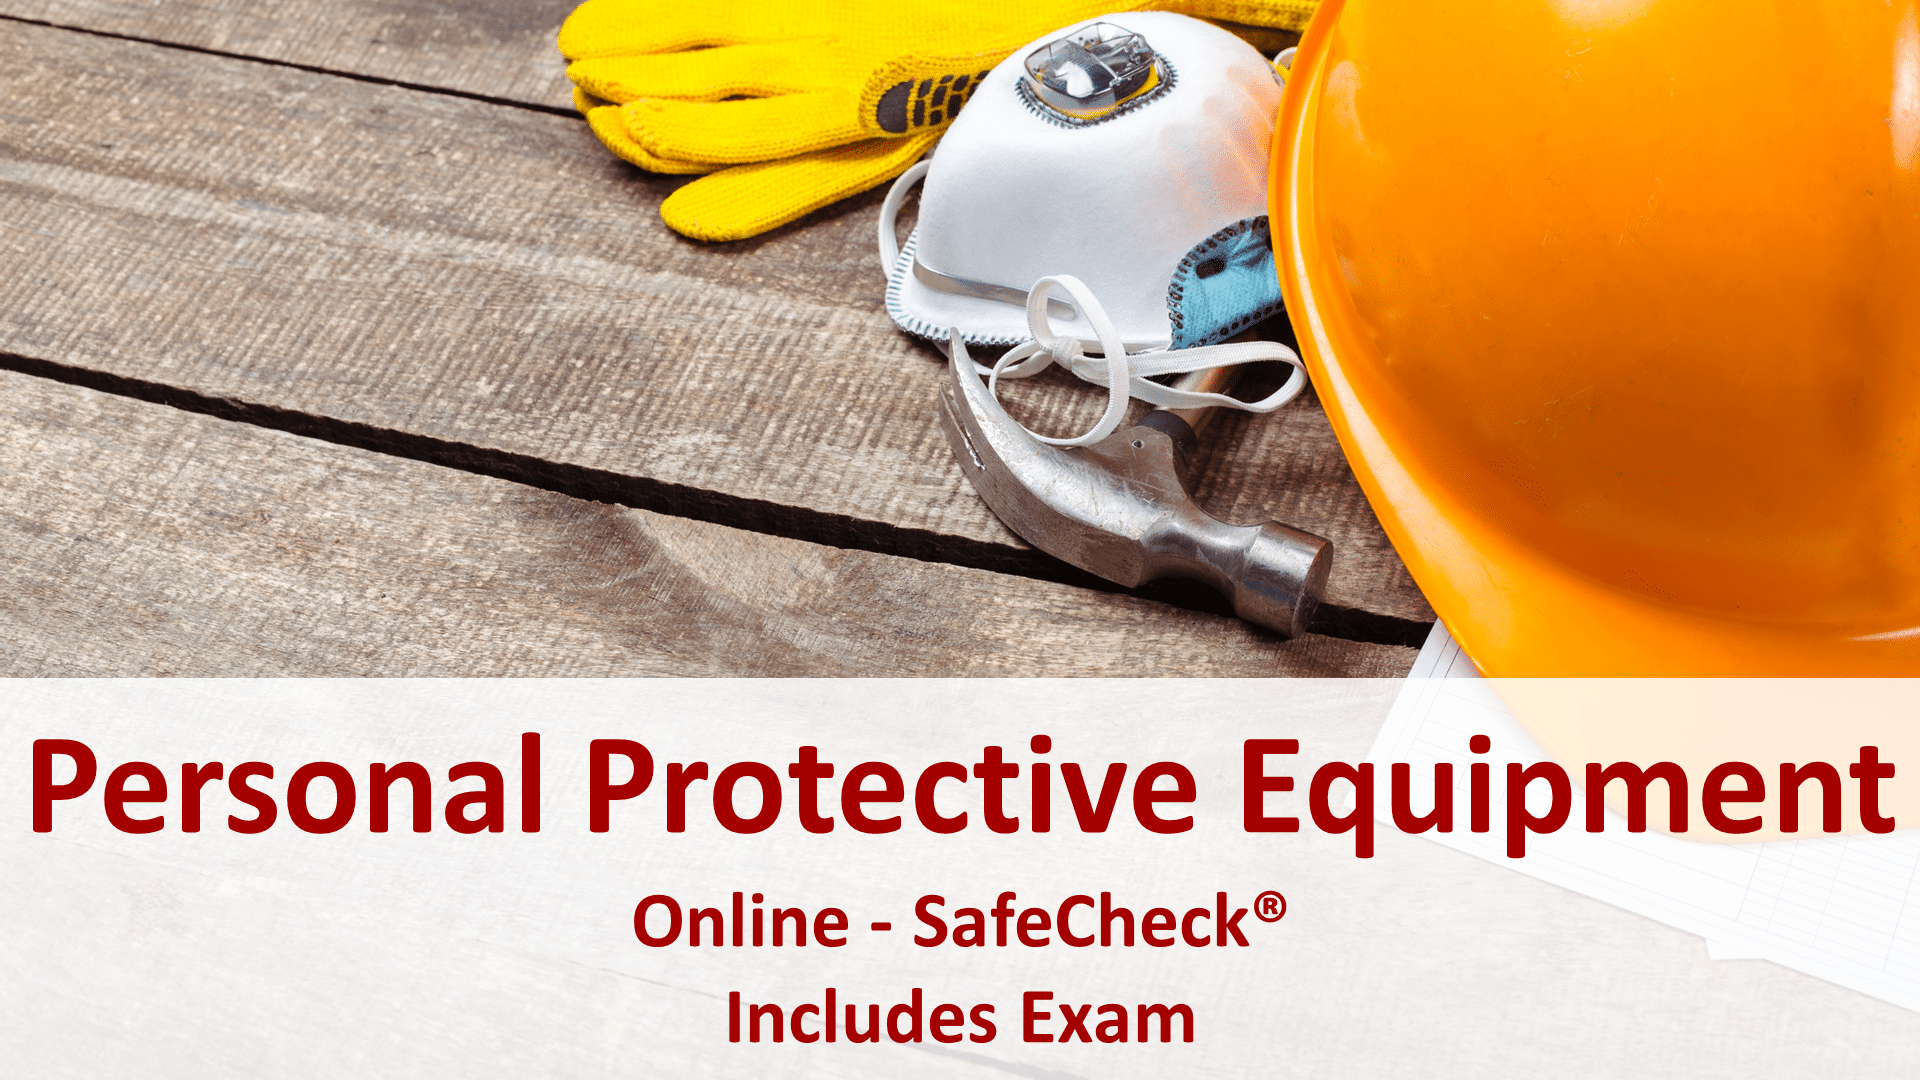 SafeCheck Personal Protective Equipment Training